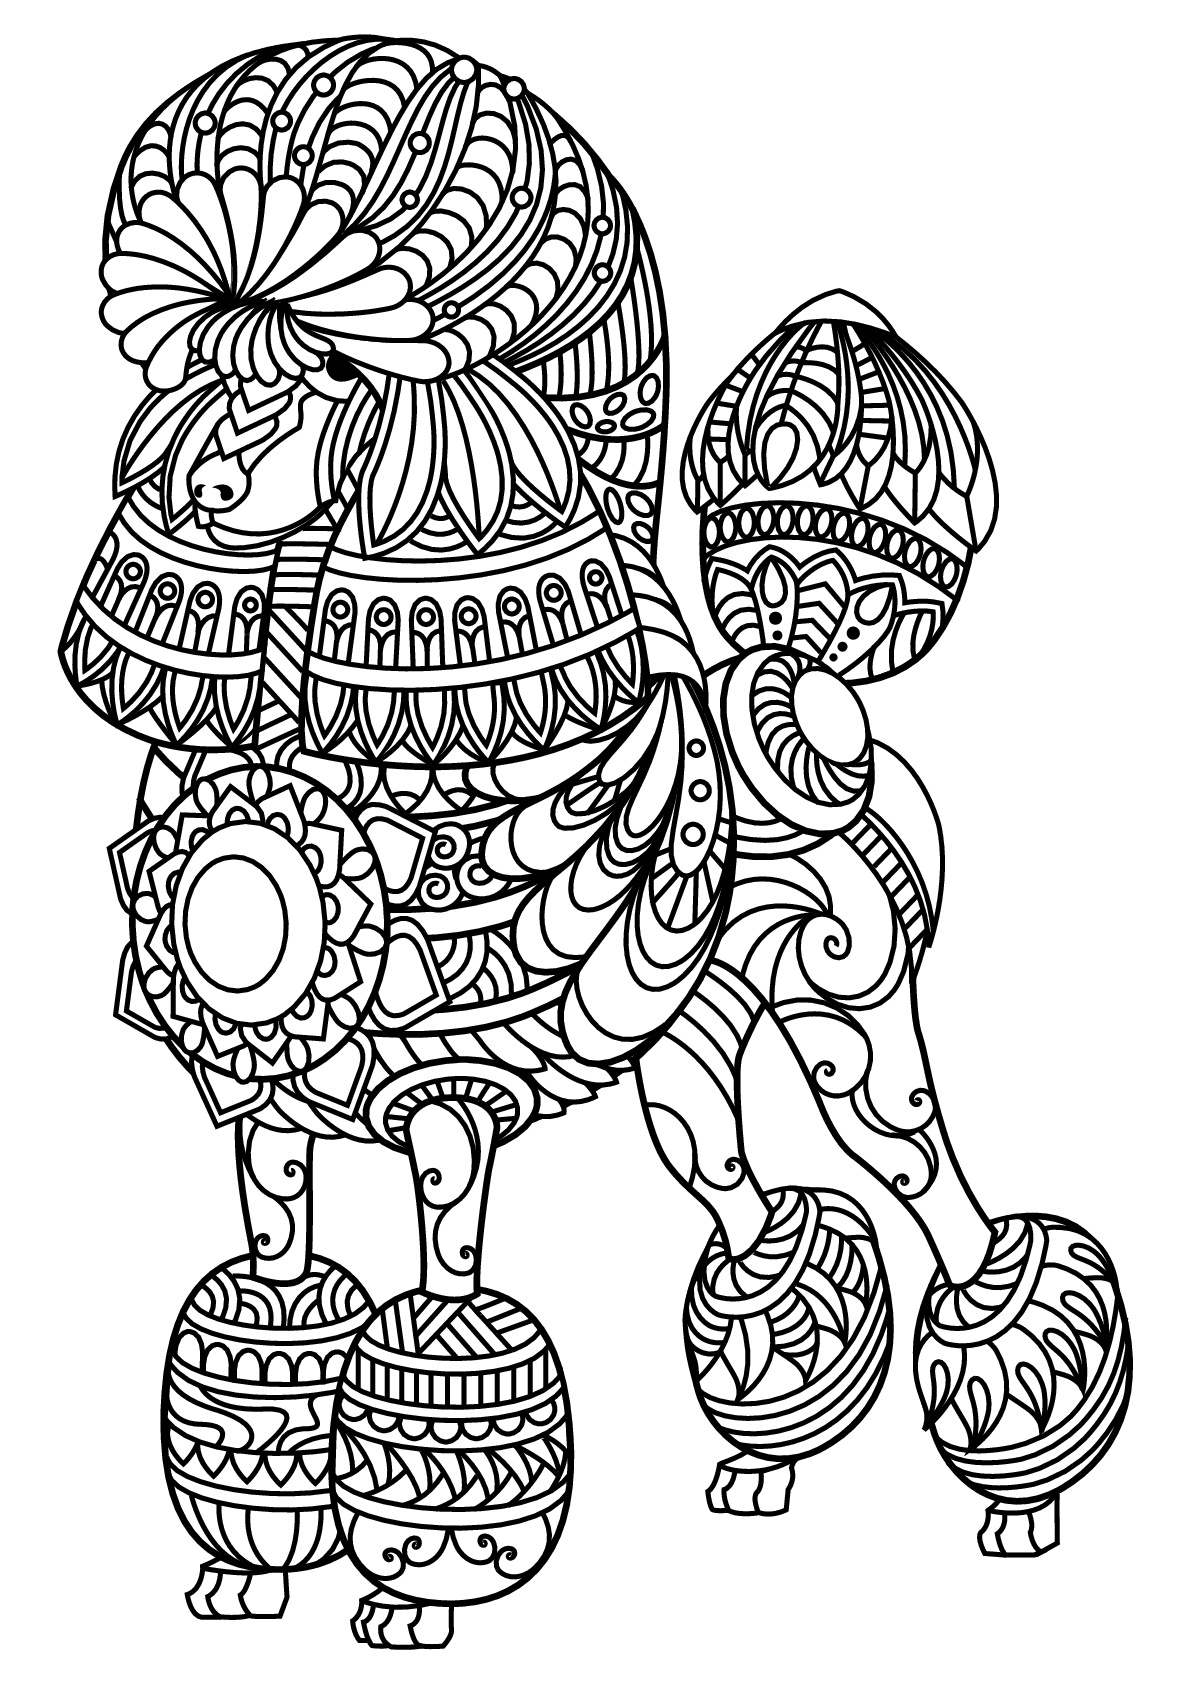 Free book dog poodle Dogs Adult Coloring Pages